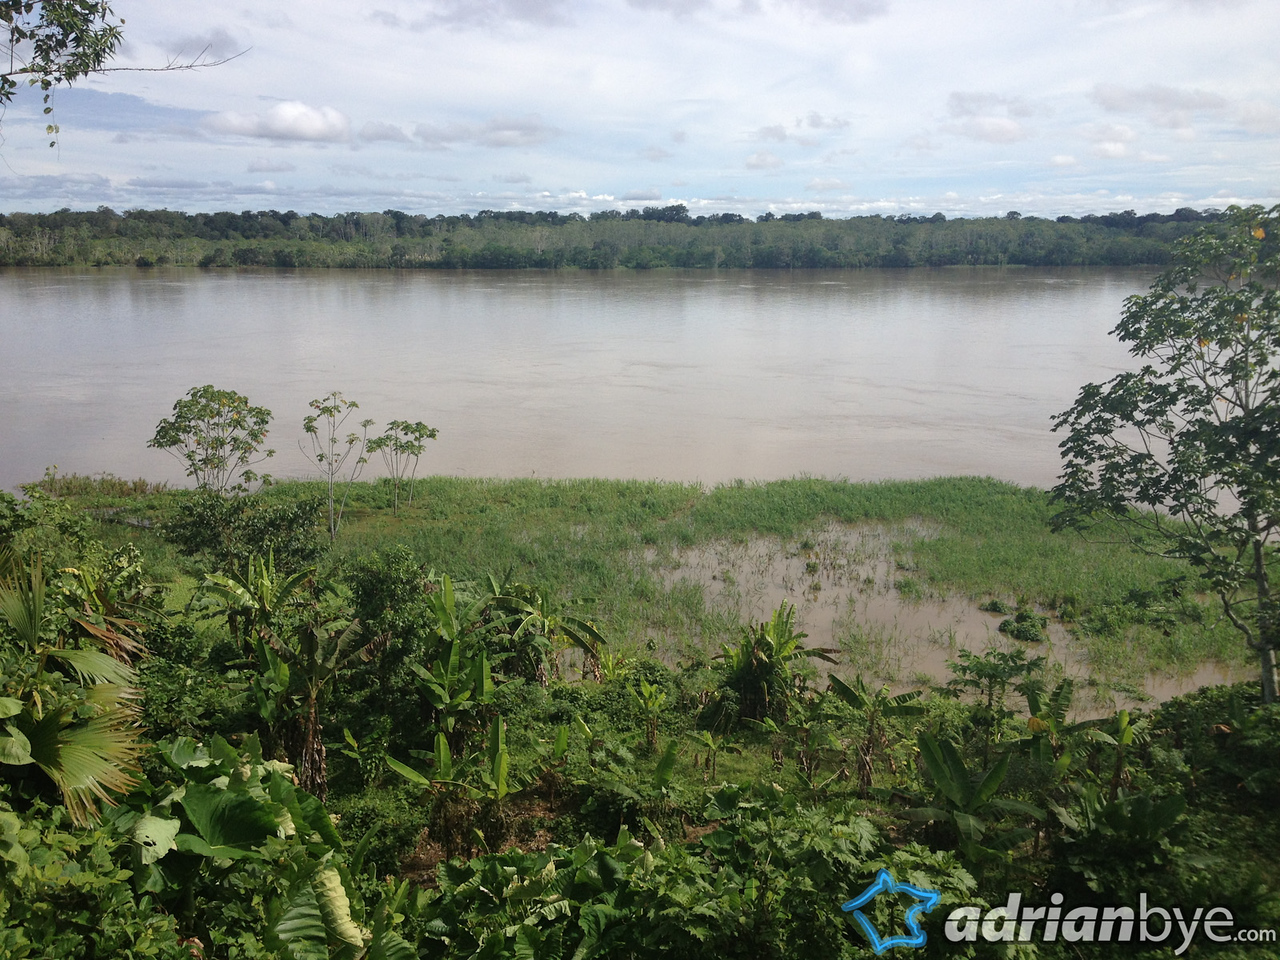 A typical view of the amazon river